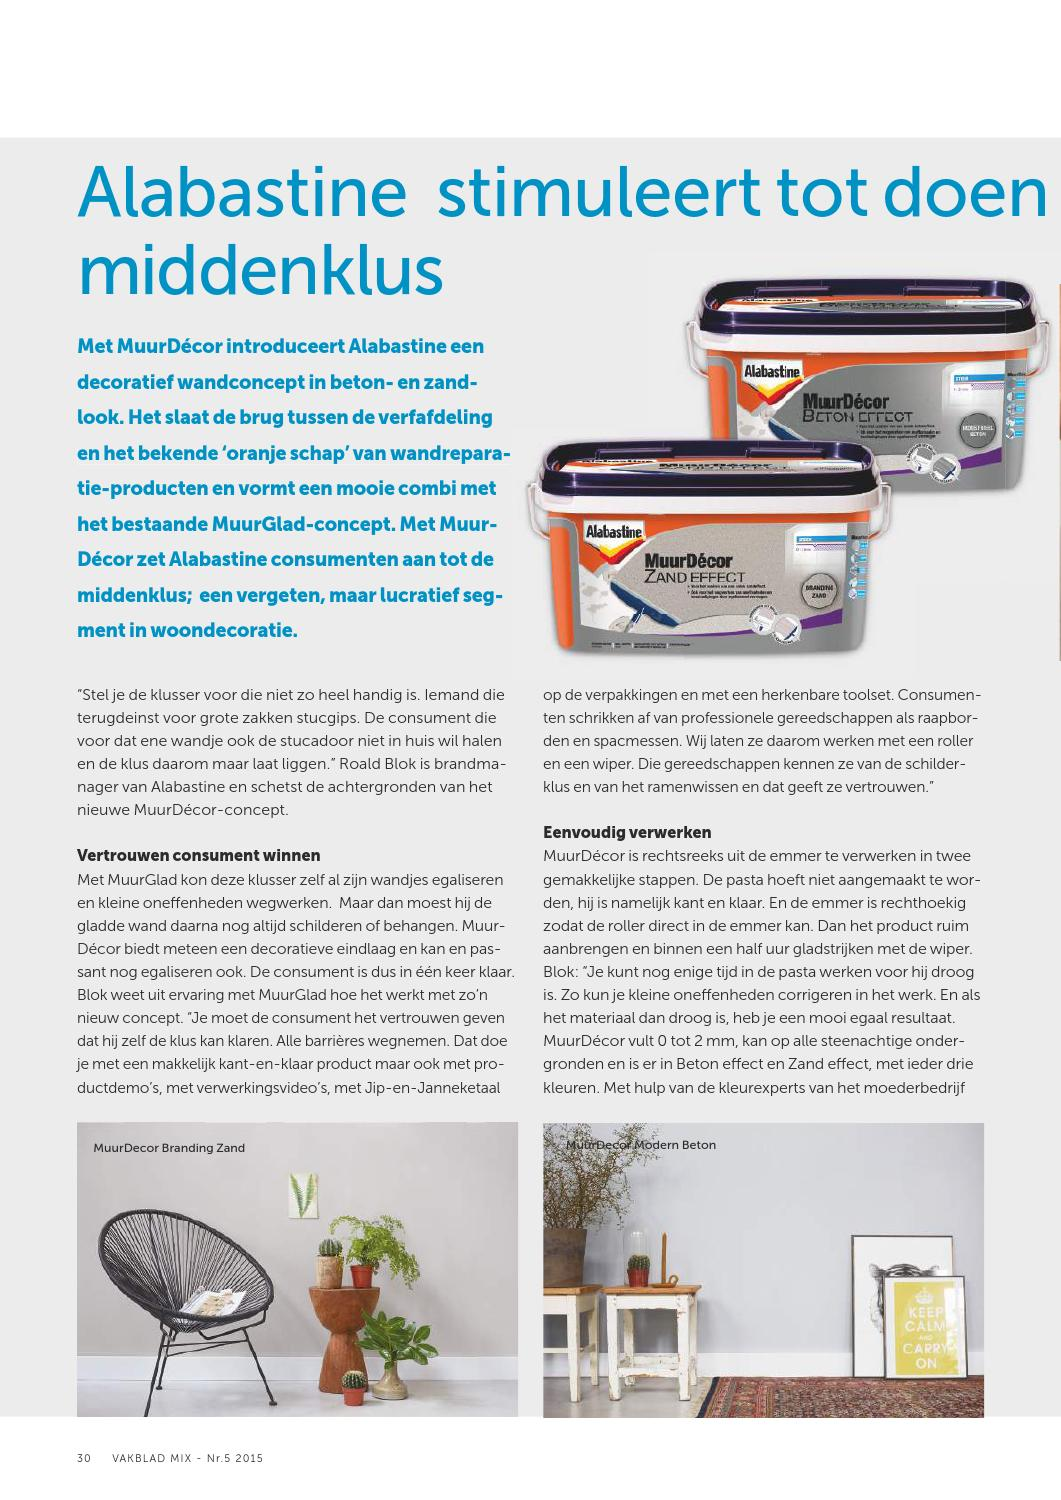 Muurglad Ervaring Mix 2015 5 By Mixpress Issuu